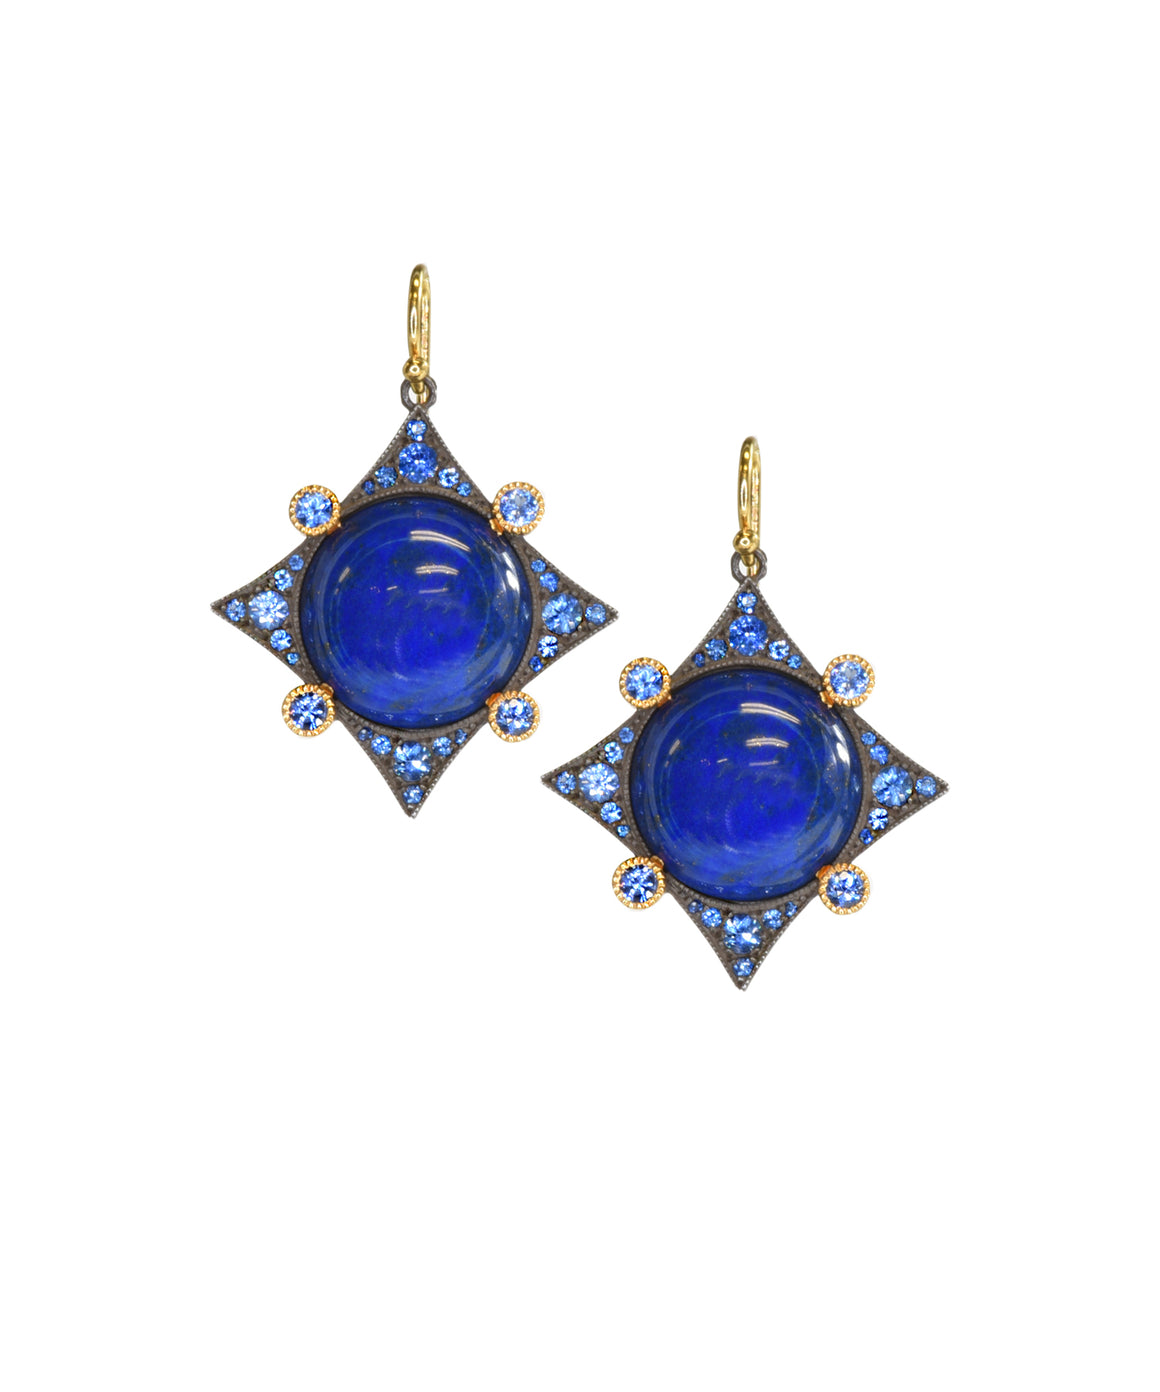 Lapis and sapphire earrings